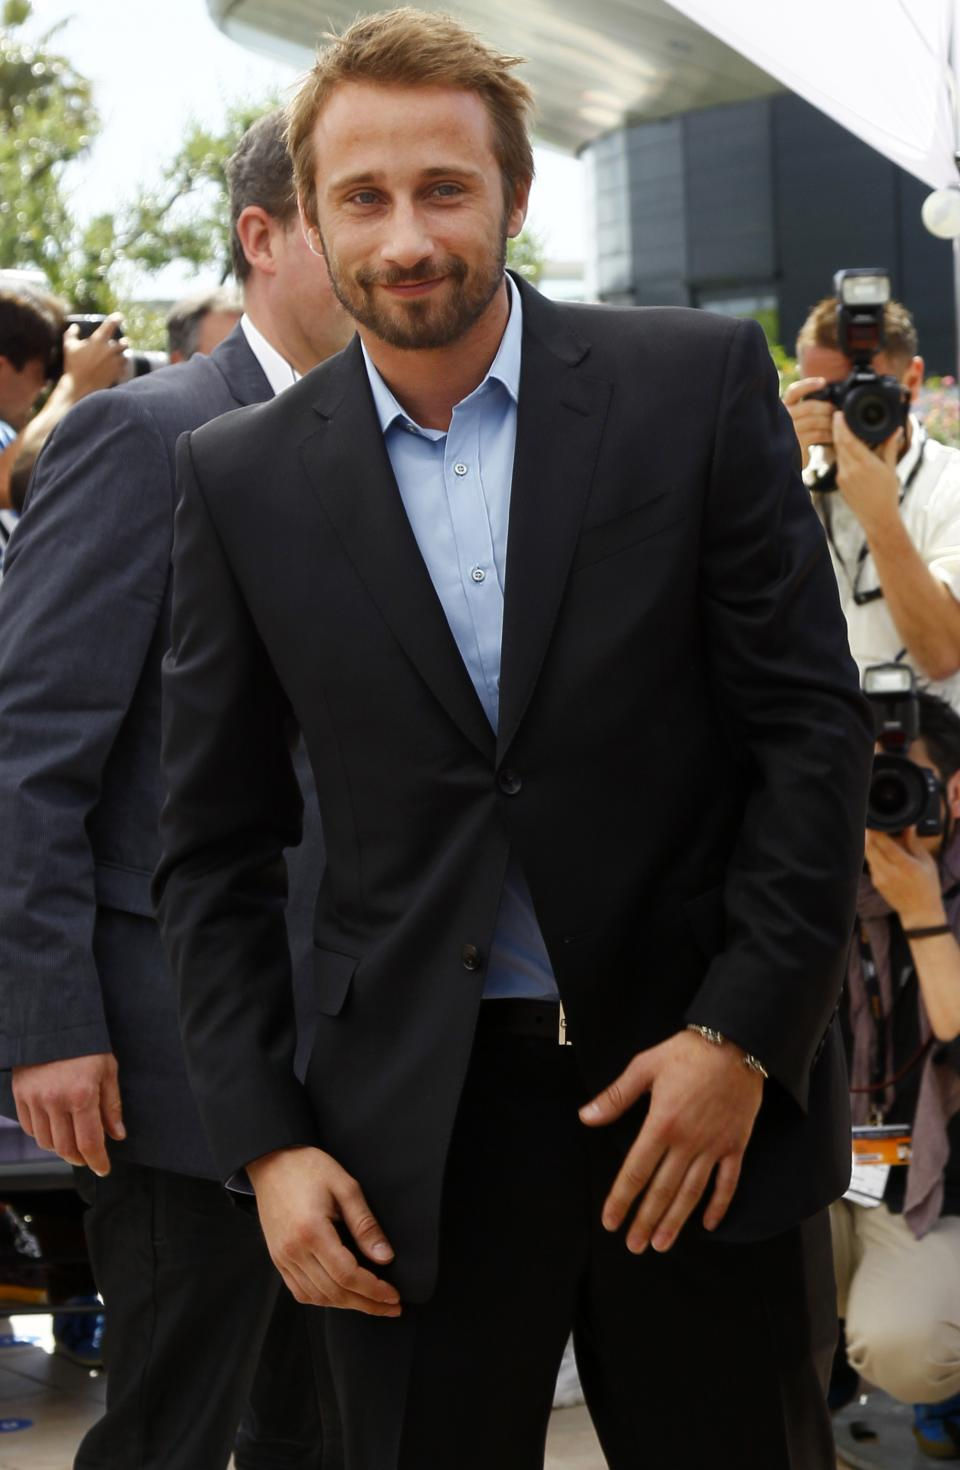 Actor Matthias Schoenaerts poses during a photo call for Rust and Bone at the 65th international film festival, in Cannes, southern France, Thursday, May 17, 2012. (AP Photo/Joel Ryan)